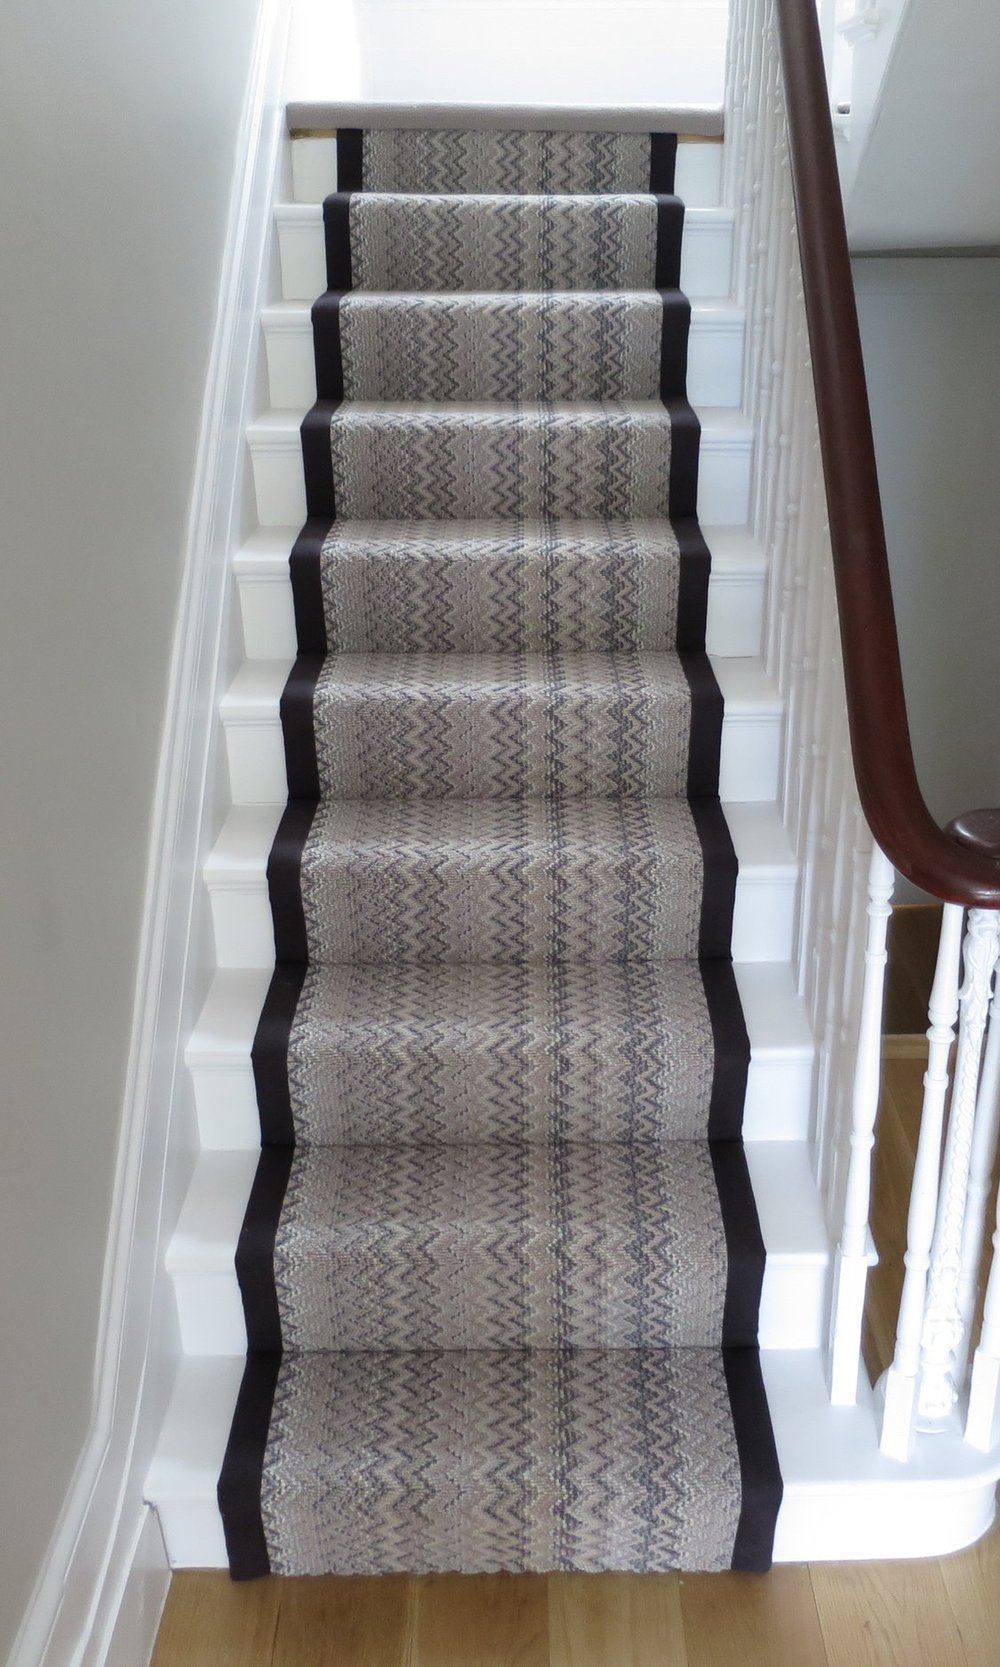 Bespoke Runners - We offer a full bespoke runner program on the majority of our ranges with the ability for custom sizes and edgings to suit the style of any home.